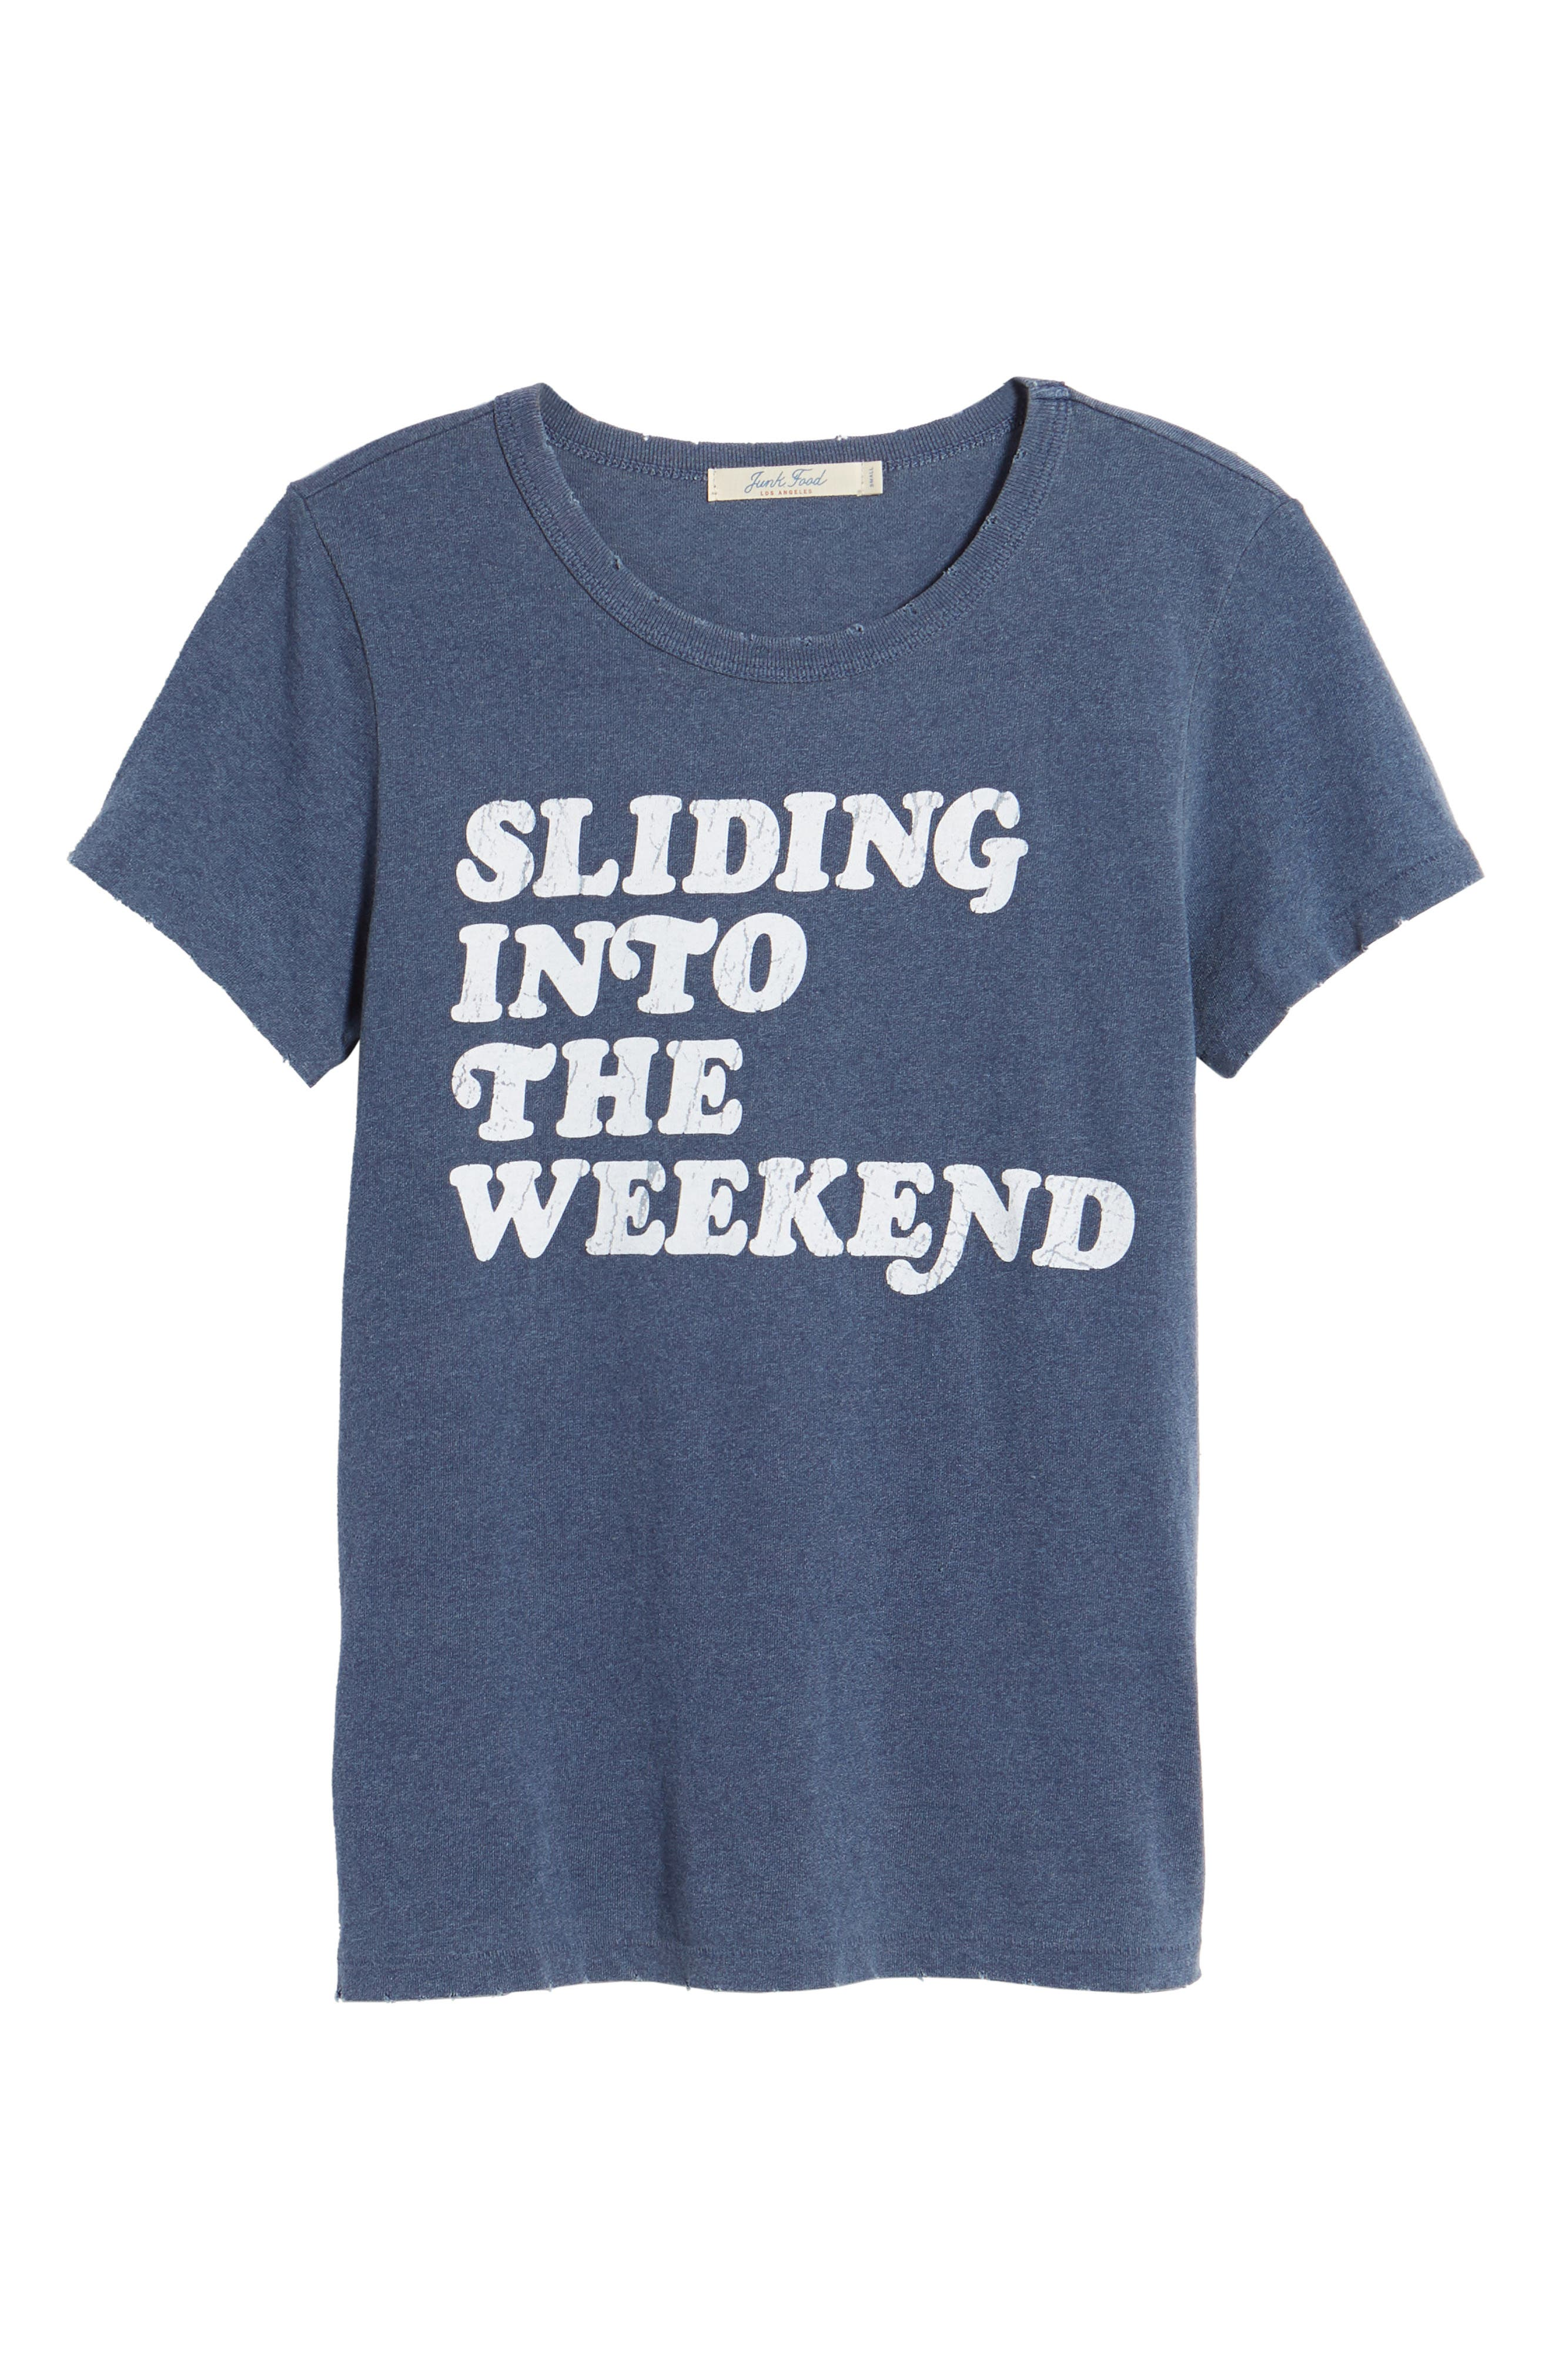 Sliding Into the Weekend Tee,                             Alternate thumbnail 7, color,                             Trnvy